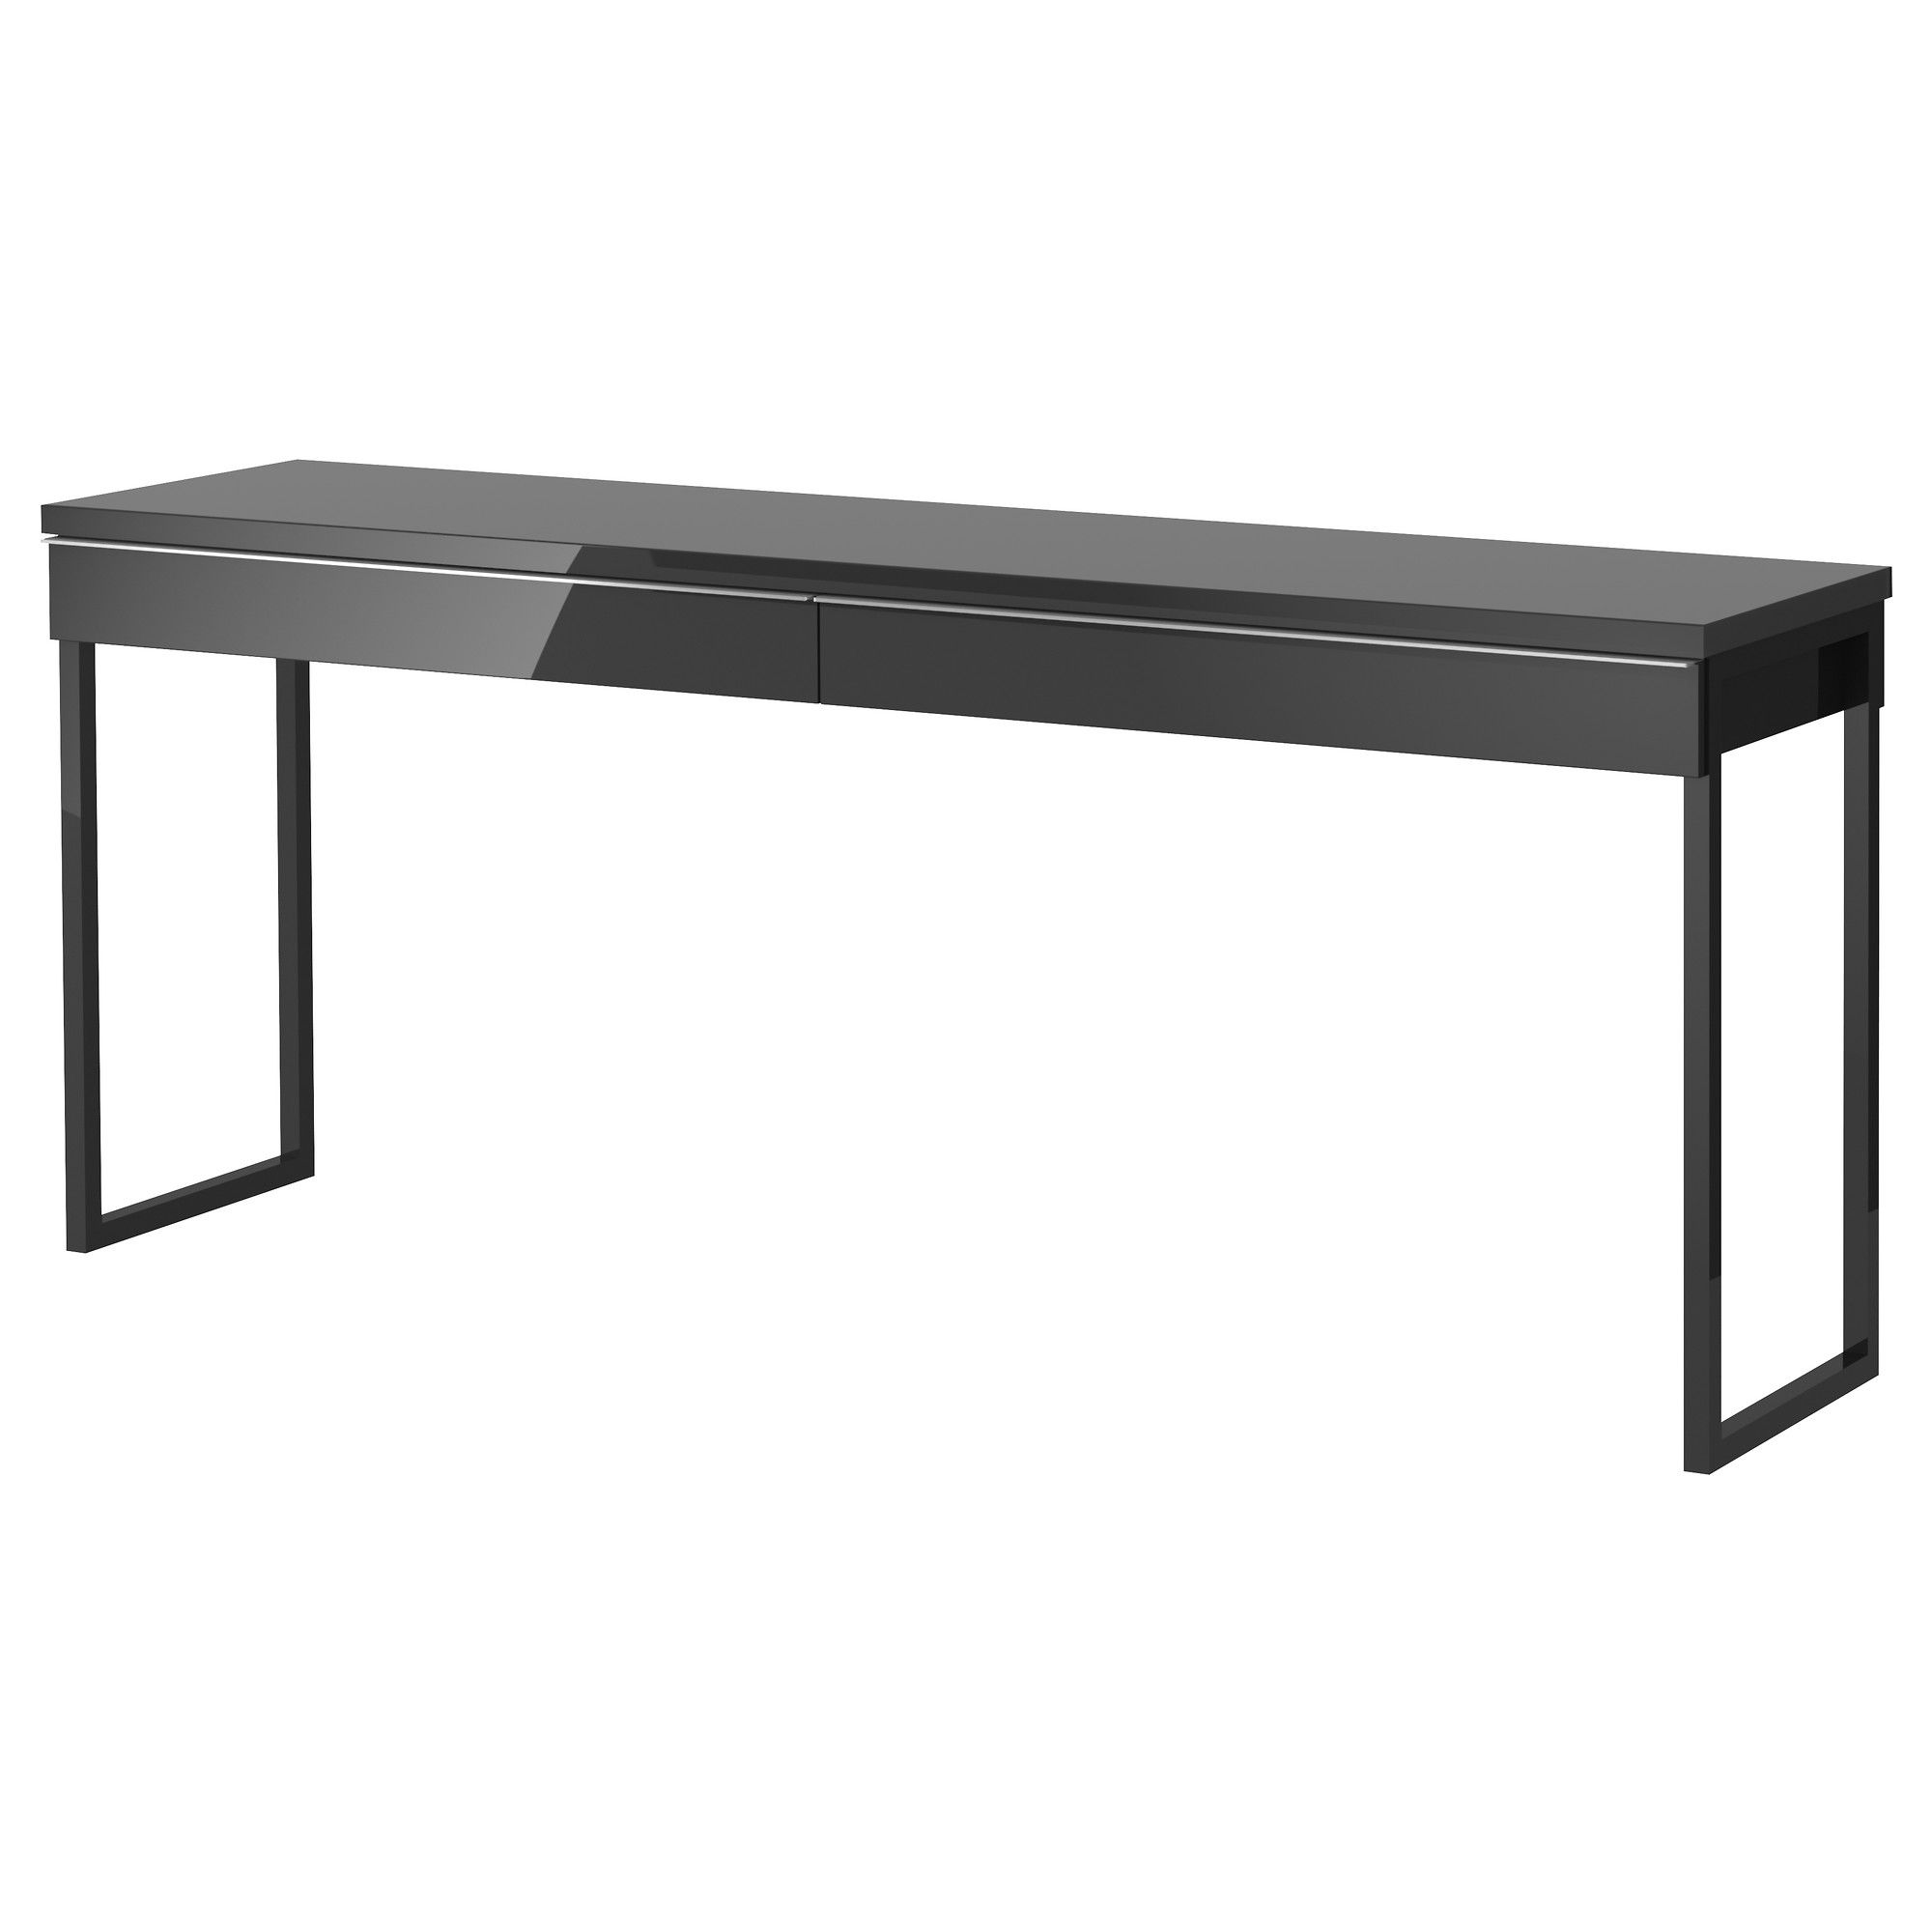 Furniture Home Furnishings Find Your Inspiration Ikea Console Table Grey Desk Black Office Furniture